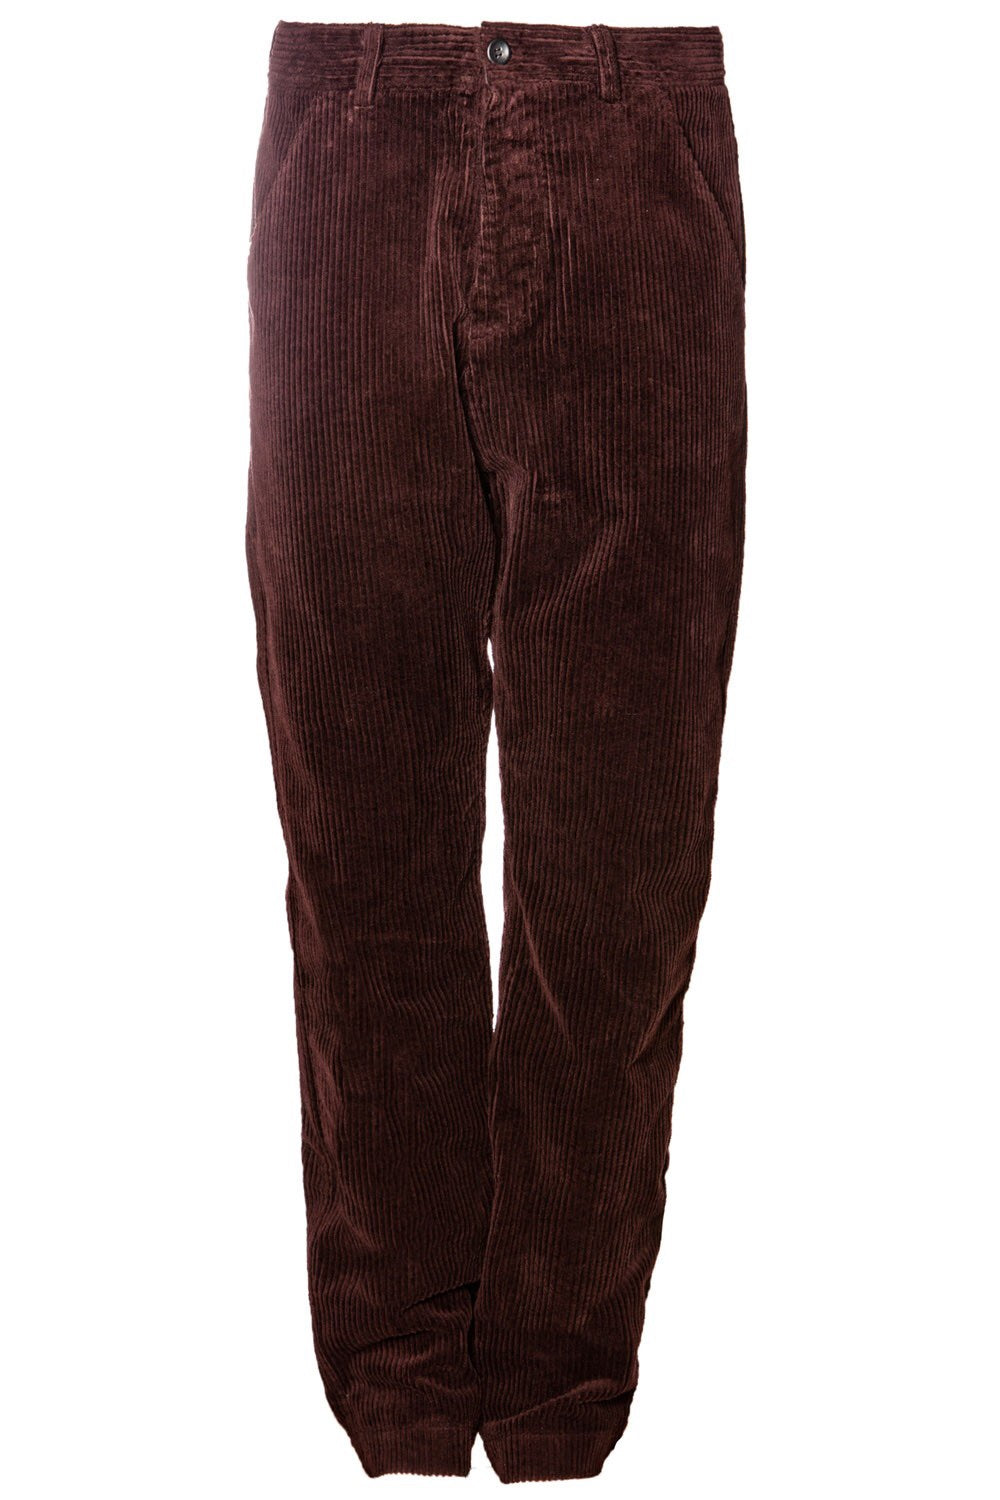 Hannes Roether Boho Corduroy Pants